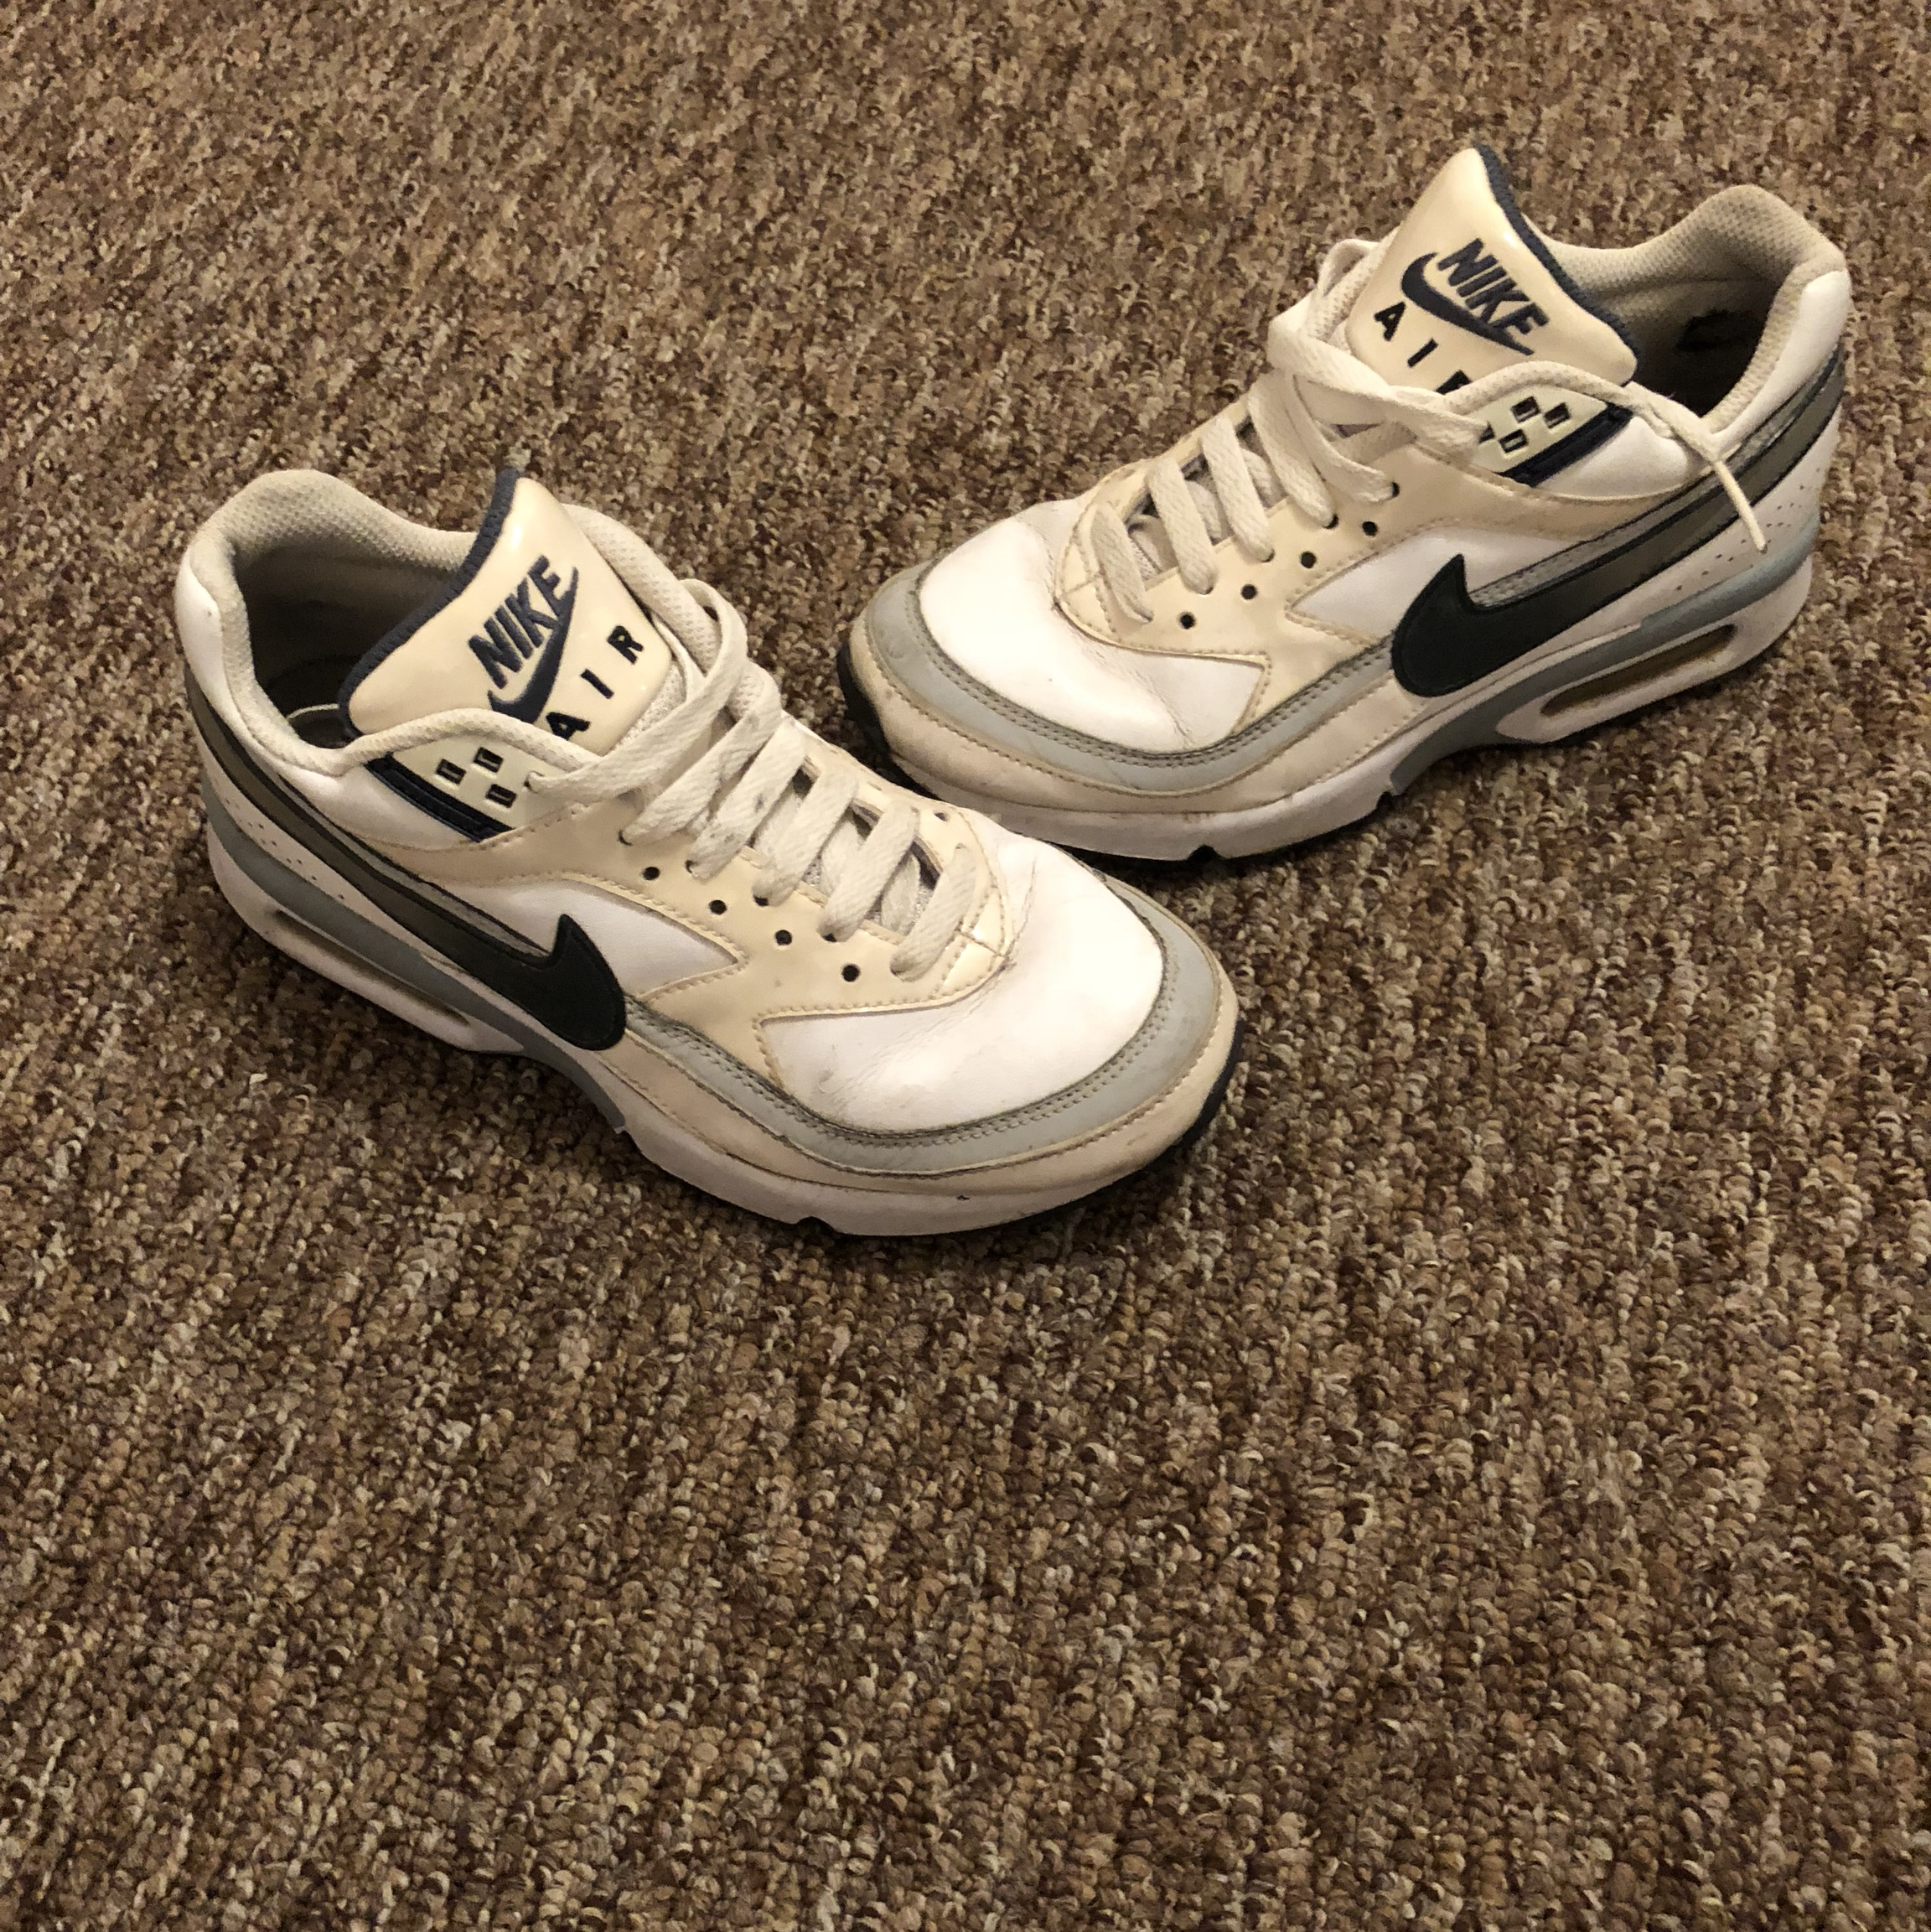 vintage nike trainers retro style old